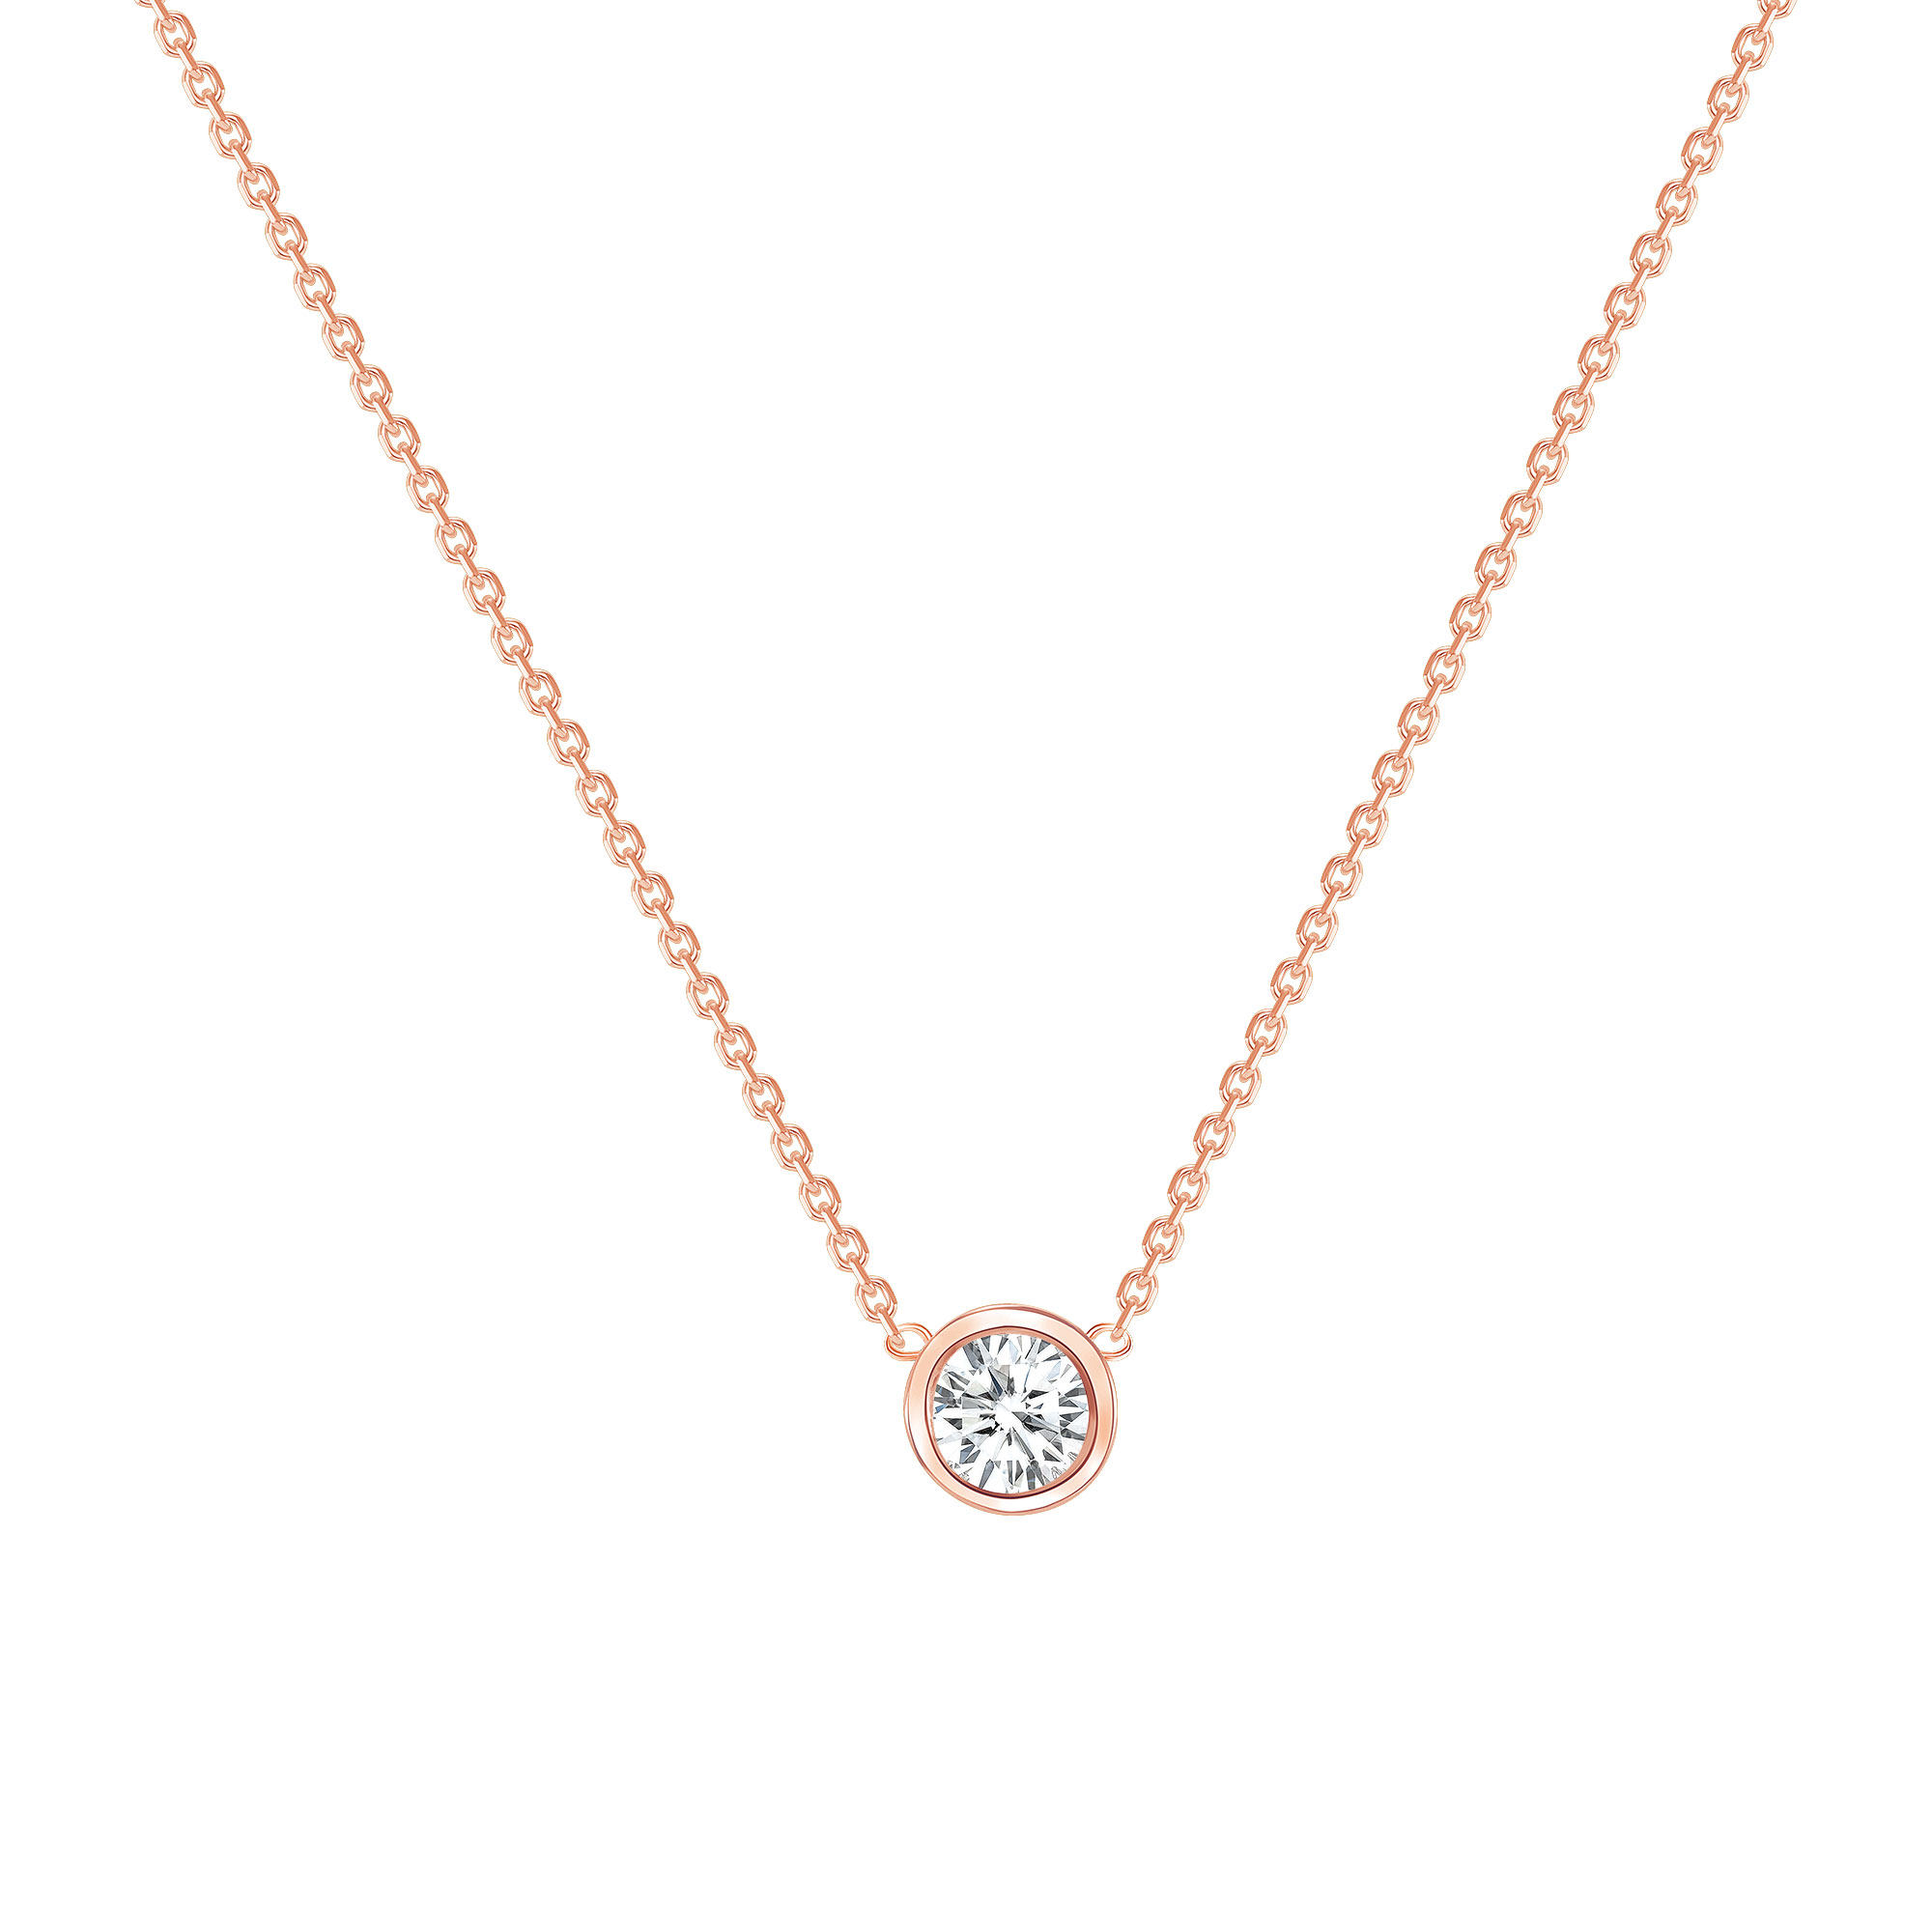 ROUND DIAMOND BEZEL SET NECKLACE - ROSE GOLD